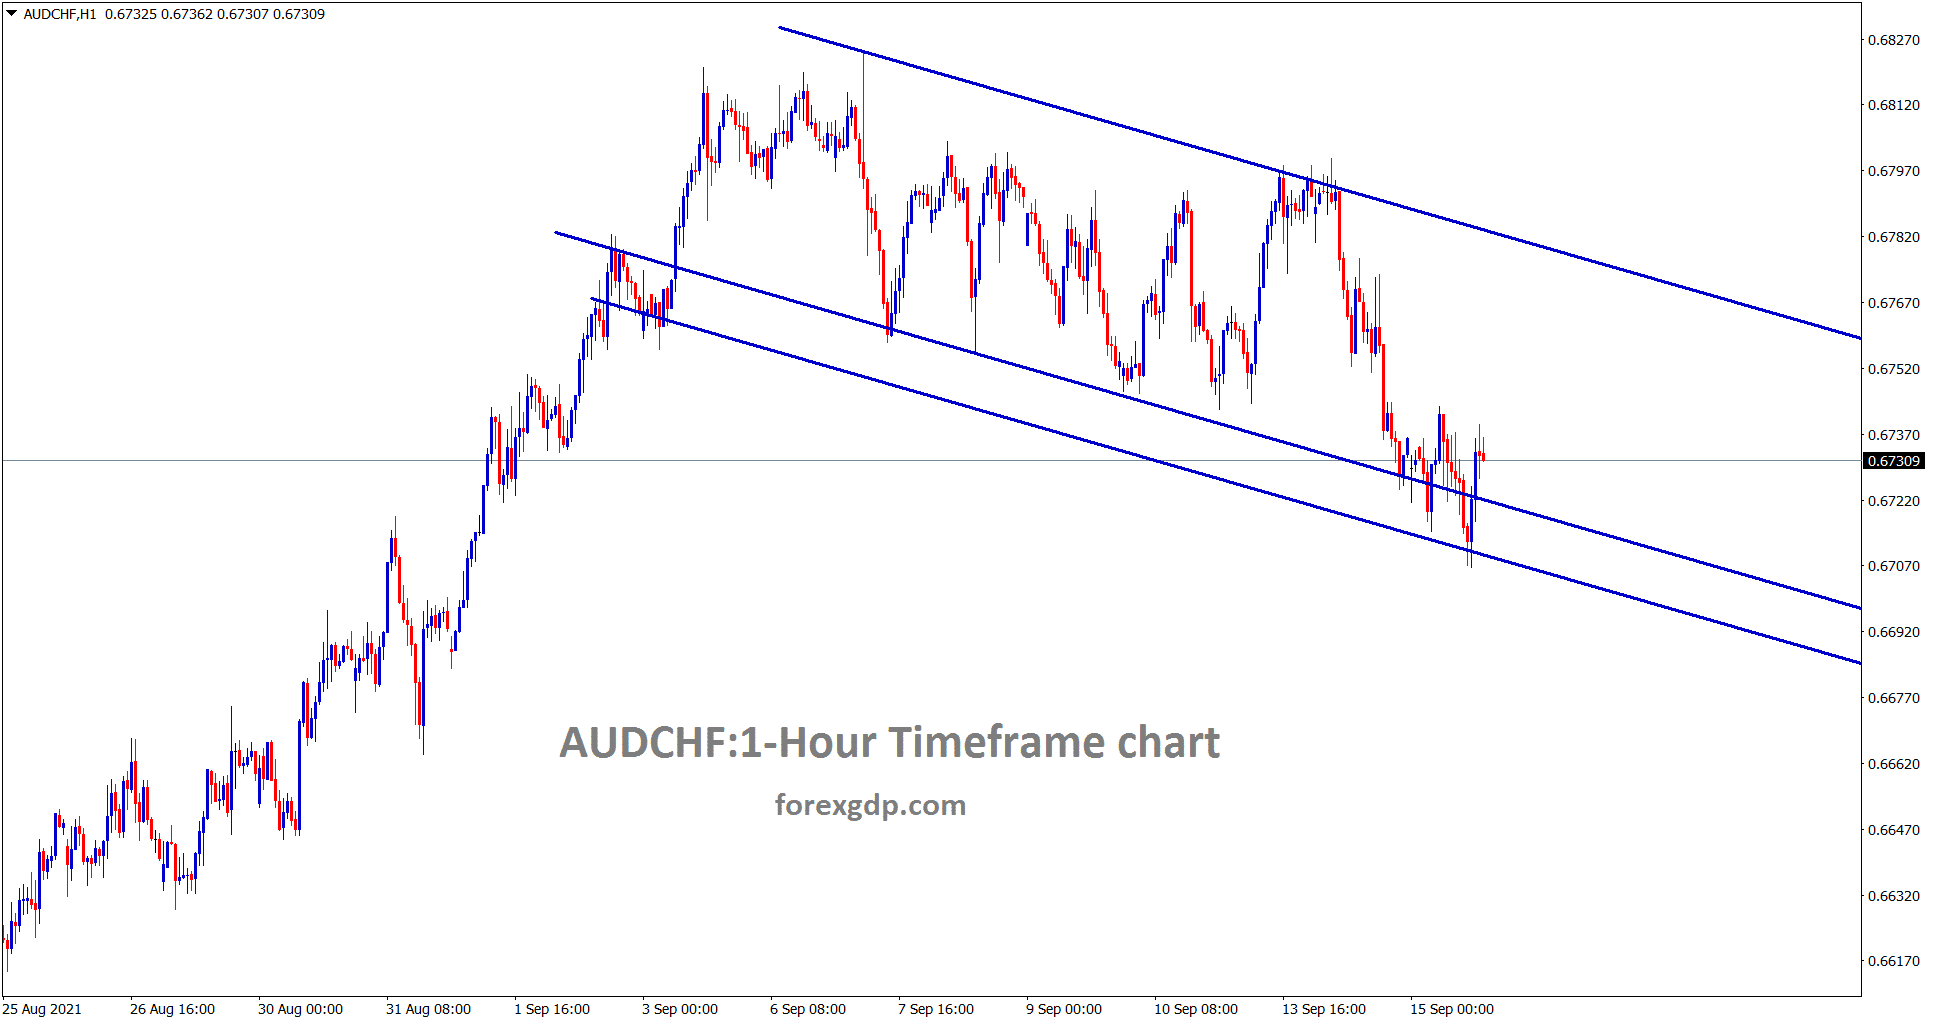 AUDCHF is moving in a descending channel range